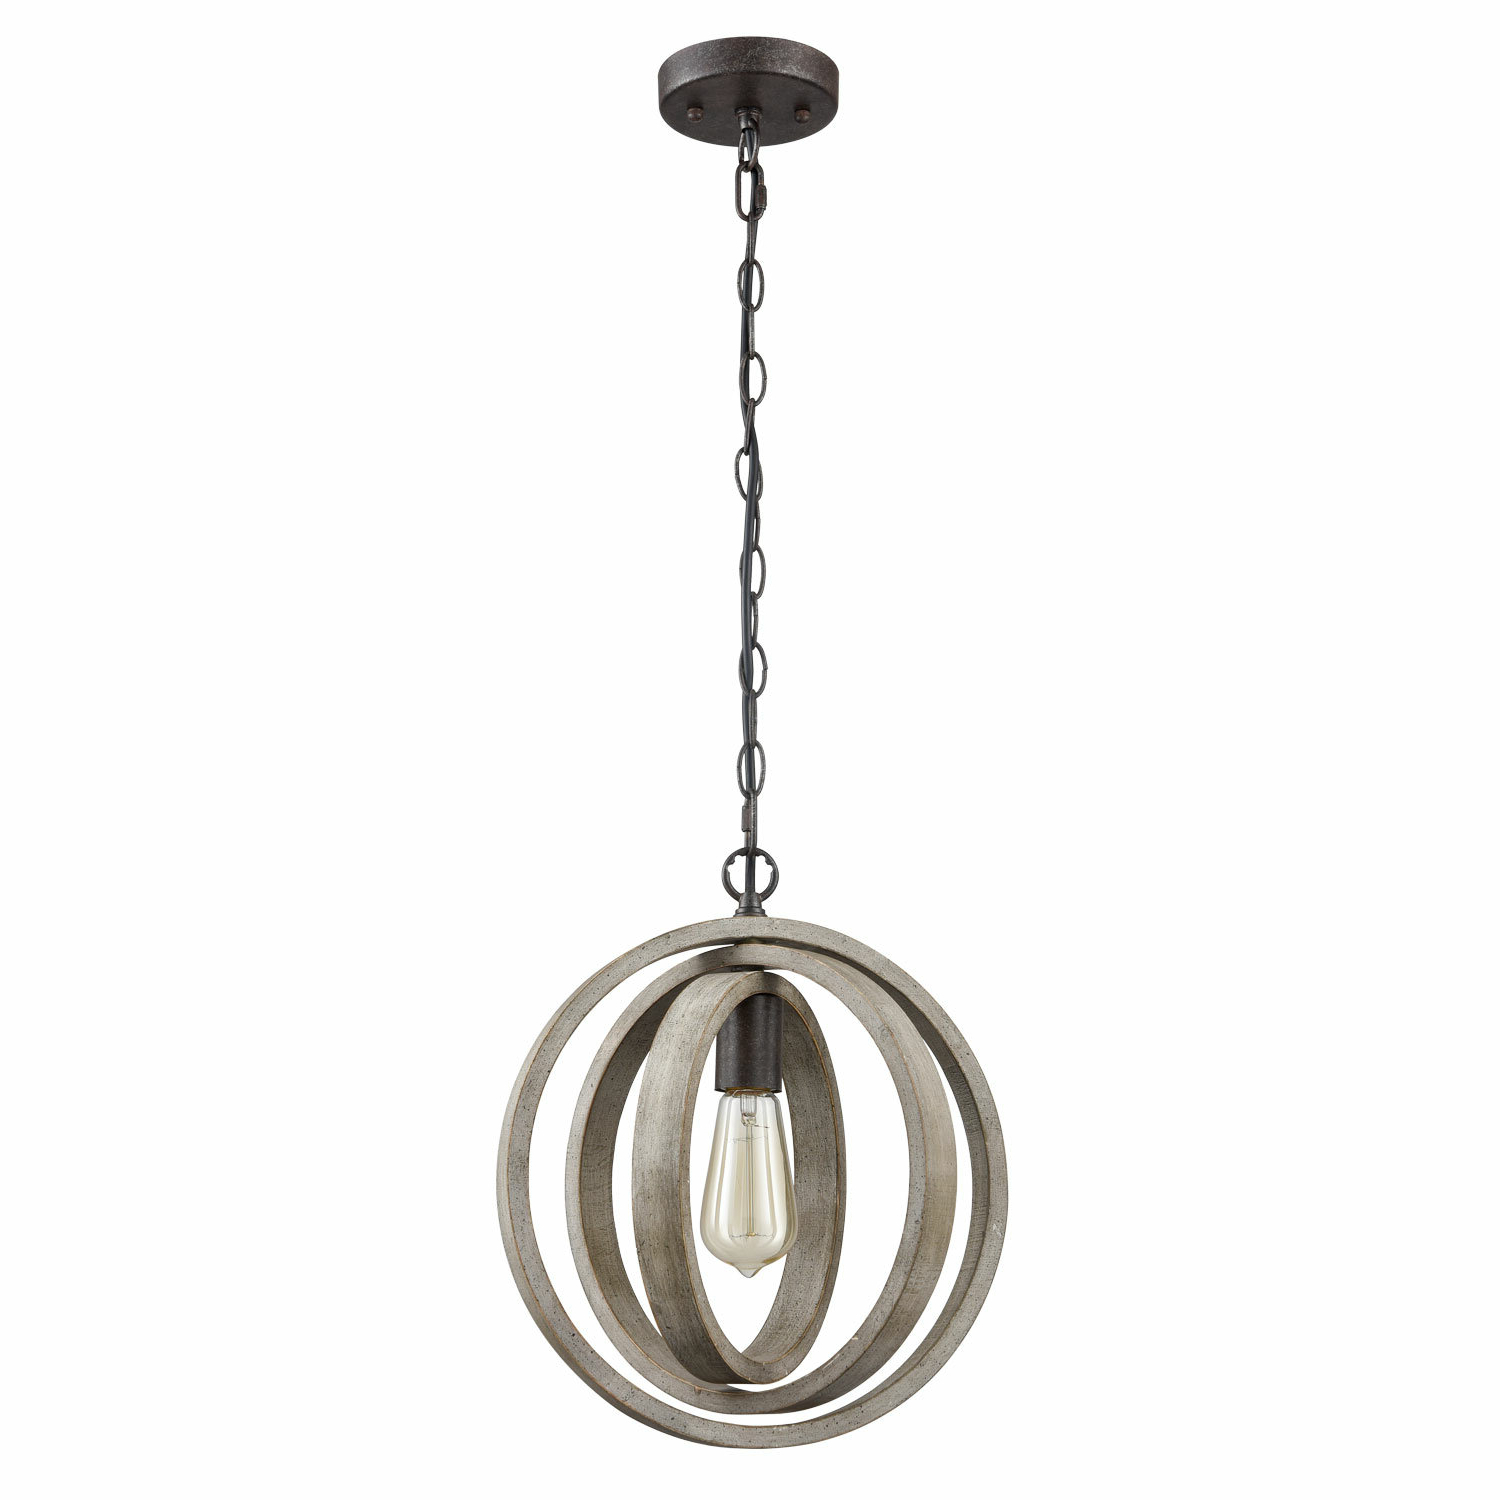 Most Popular Adame Modern Rustic 1 Light Globe Pendant Intended For Irwin 1 Light Single Globe Pendants (View 12 of 20)